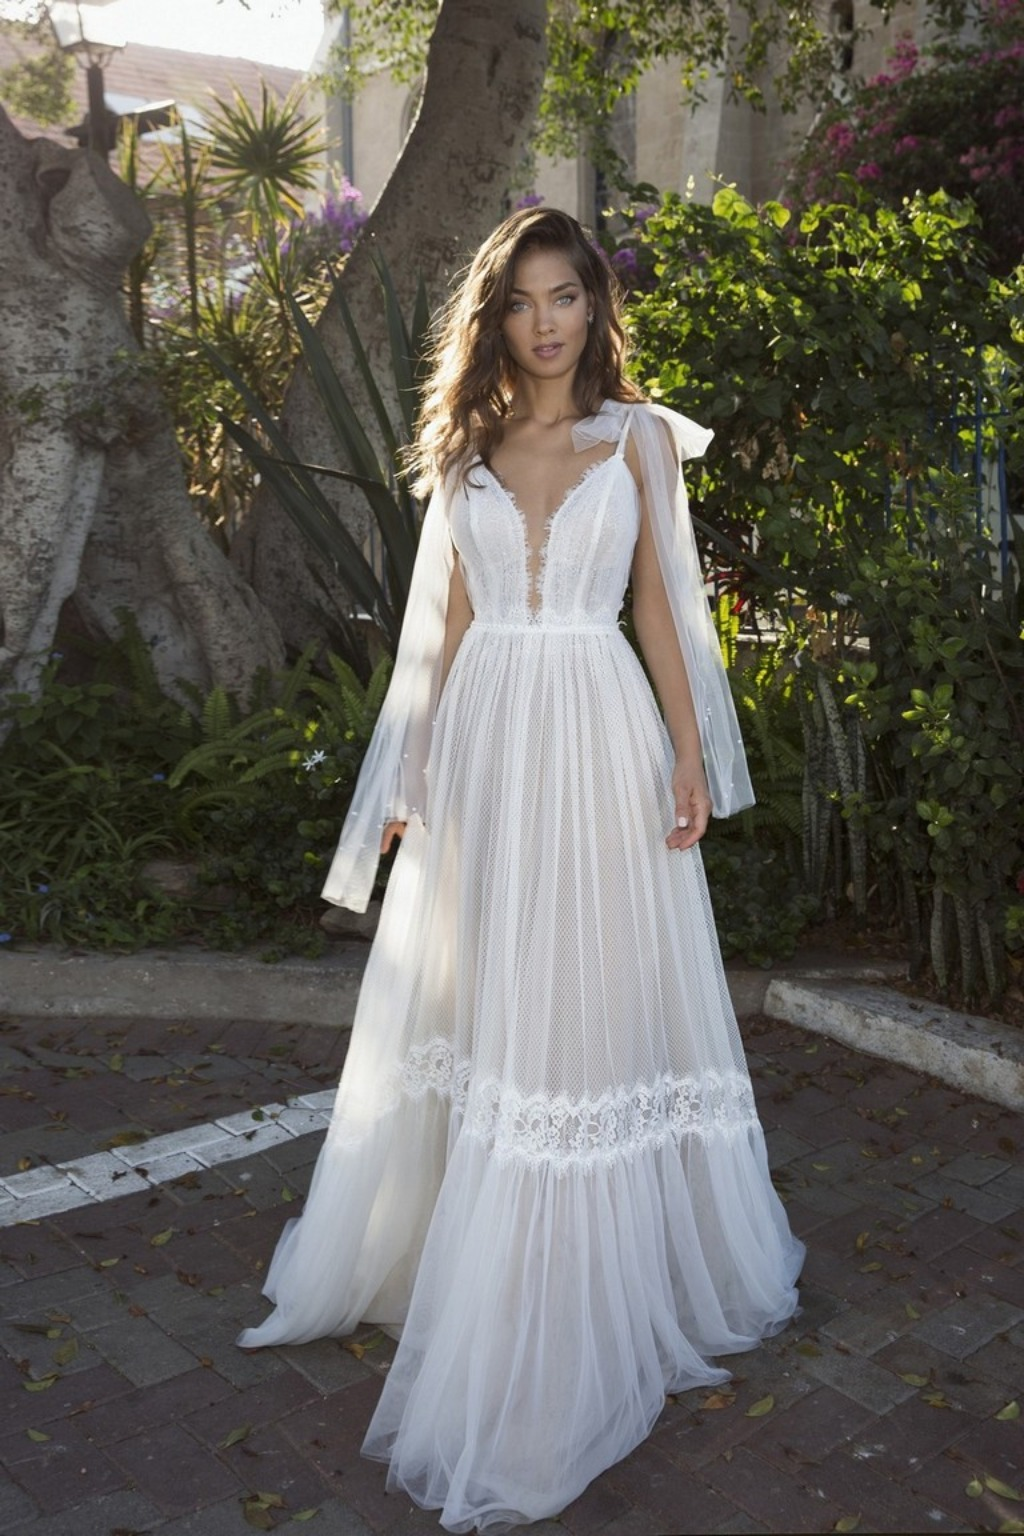 This gorgeous wedding dress is available at Diamond Bridal Gallery.